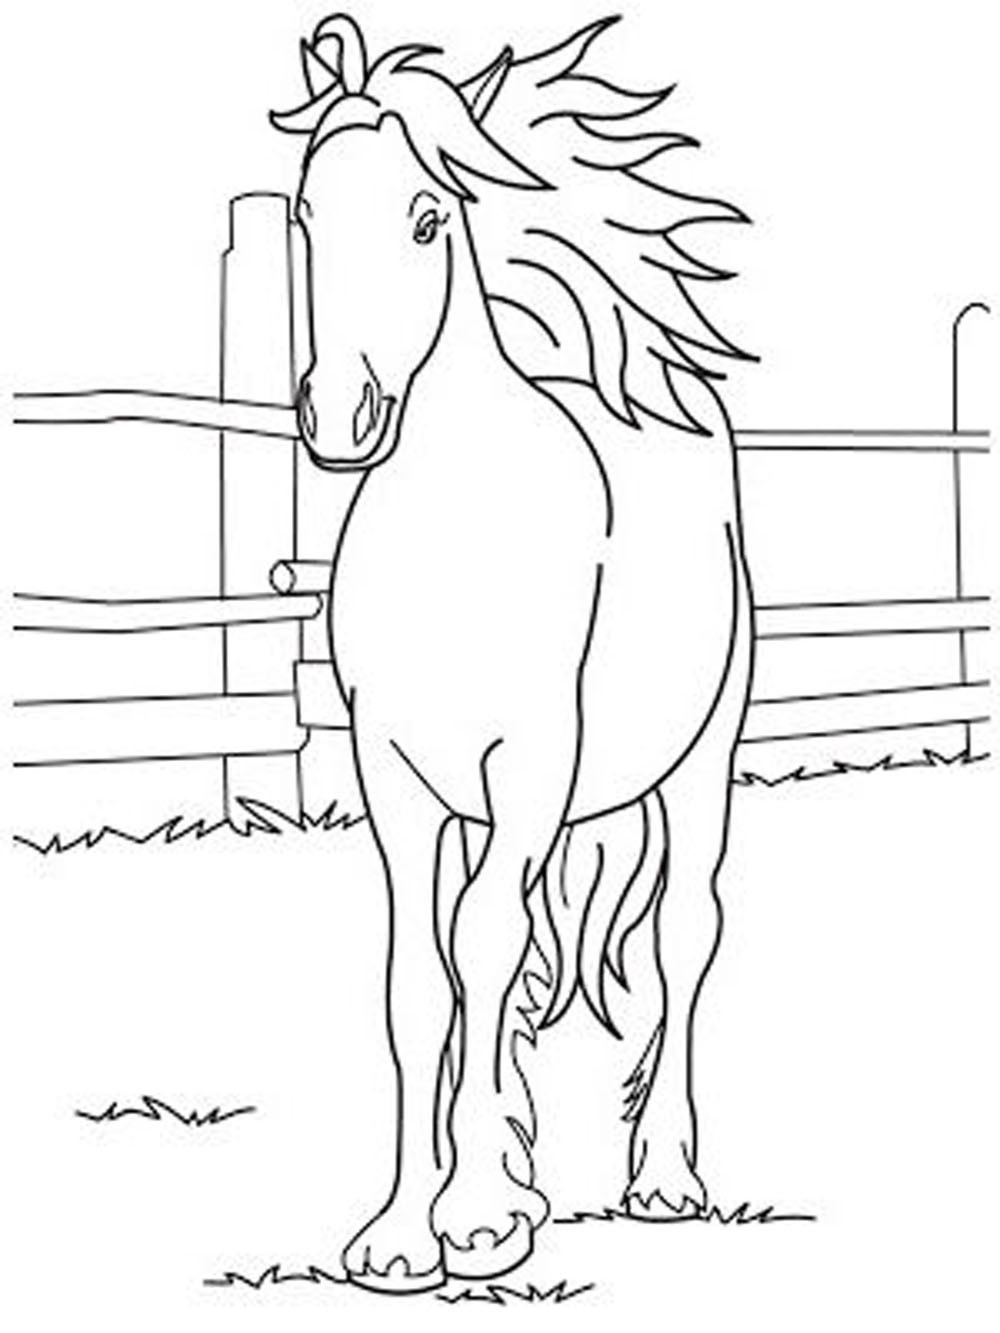 Printable Horse Anatomy Worksheets Stunning Horse Coloring Pages forschoolers Picture